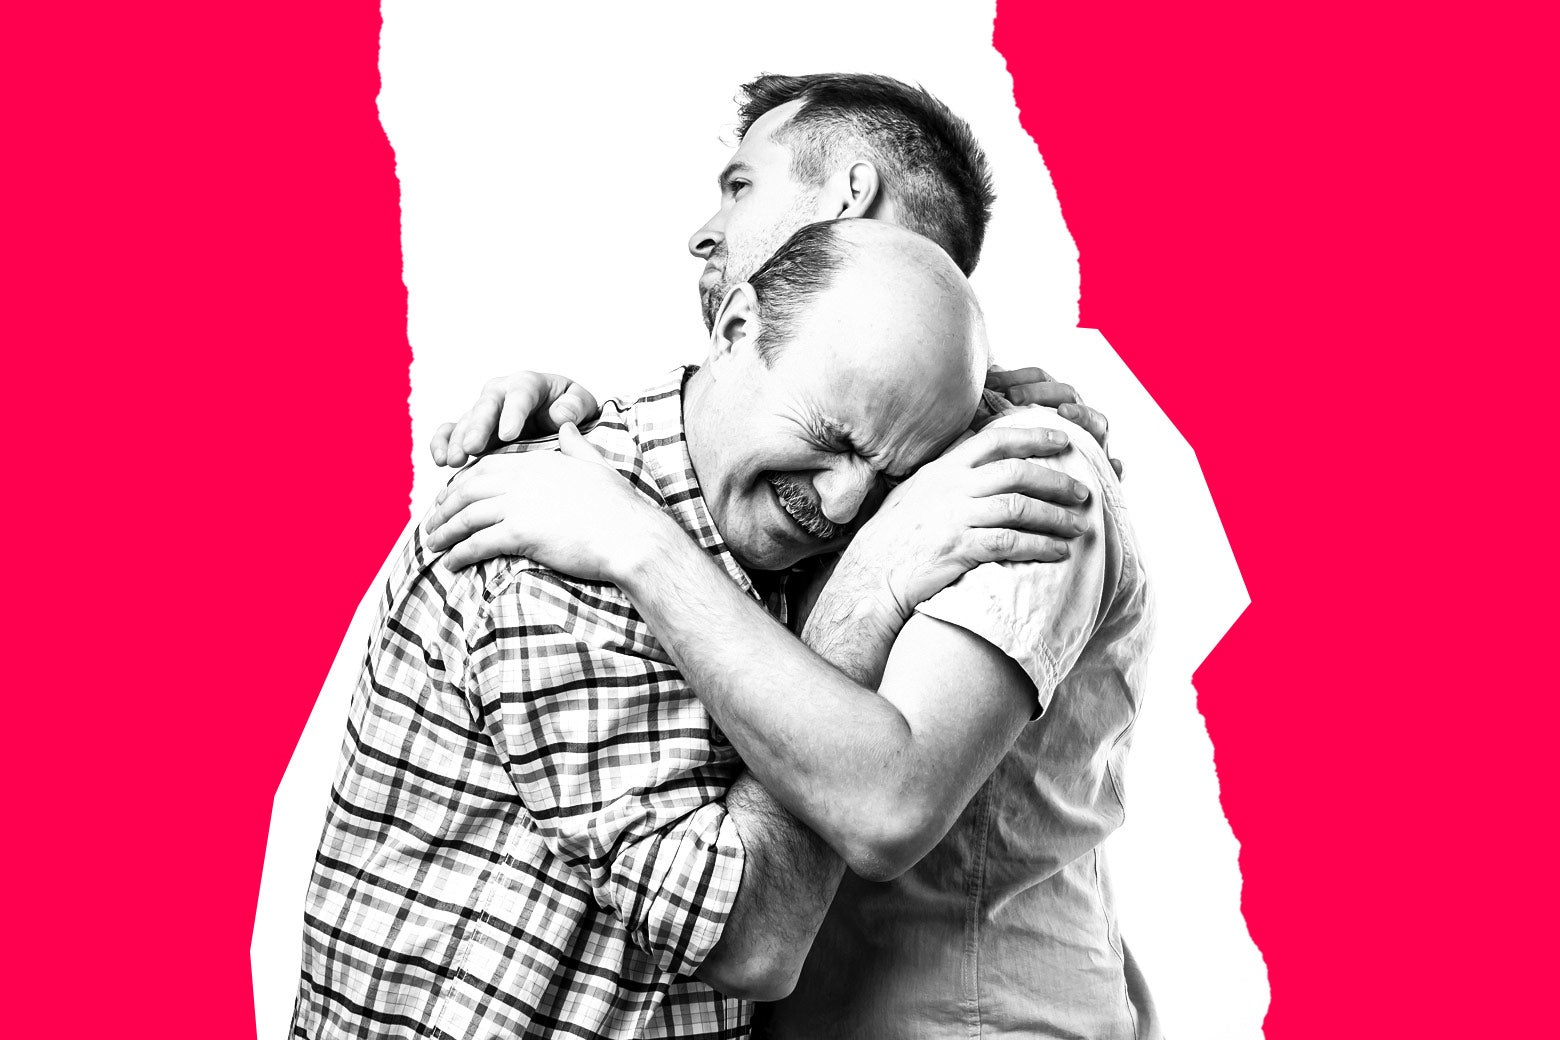 A man looks uncomfortable as his father embraces him.